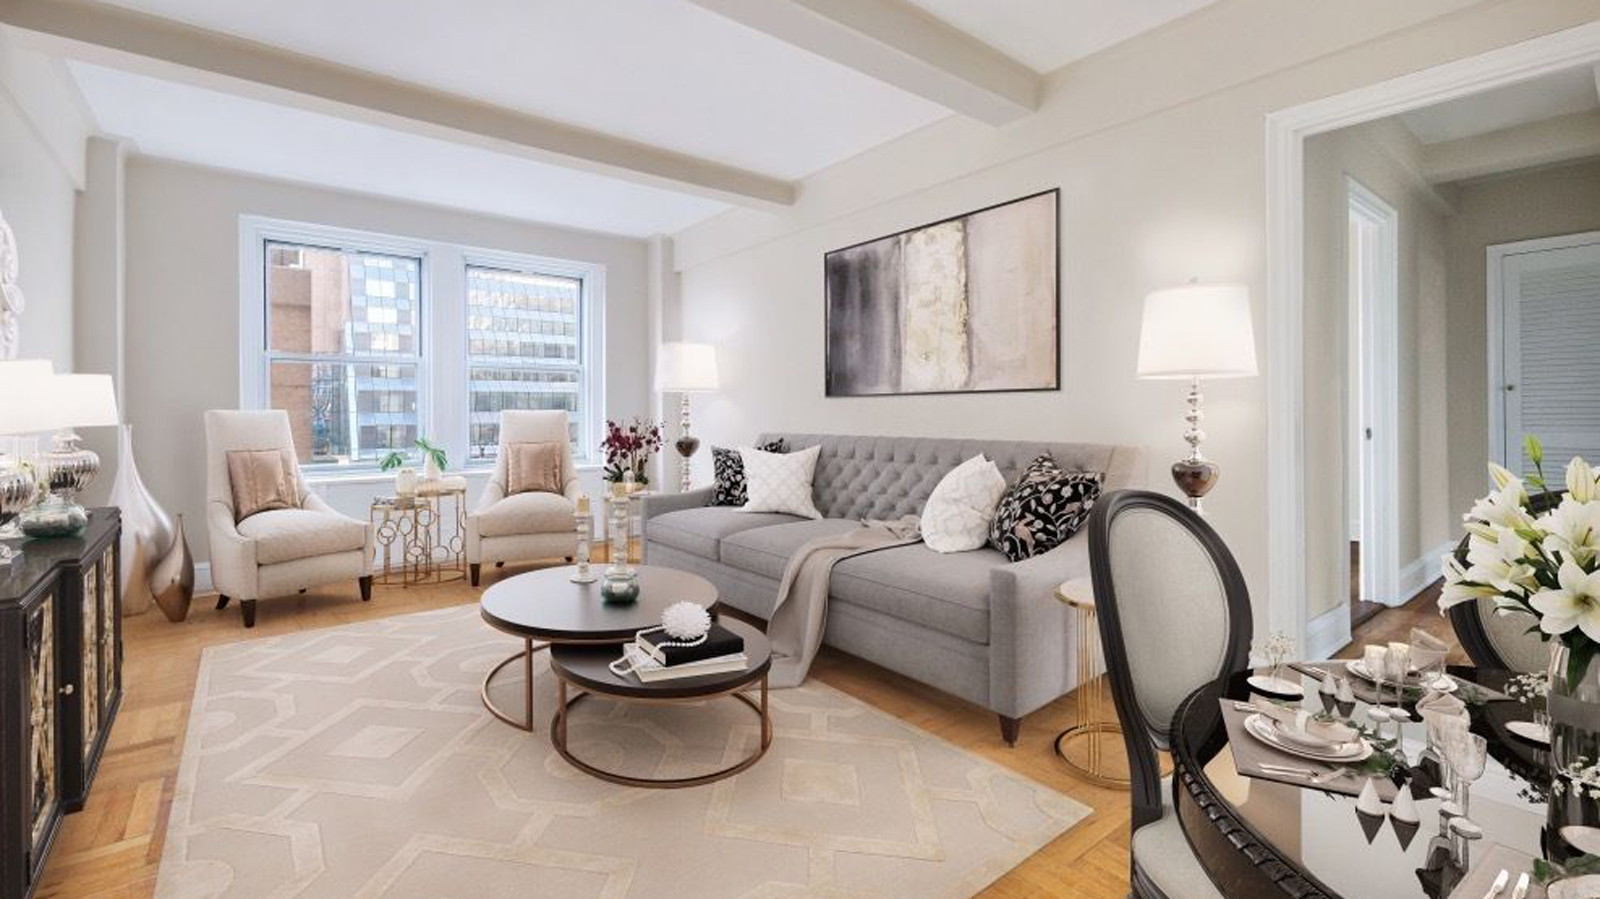 Haddon Hall, 433 West 34th Street - NYC Apartments | CityRealty